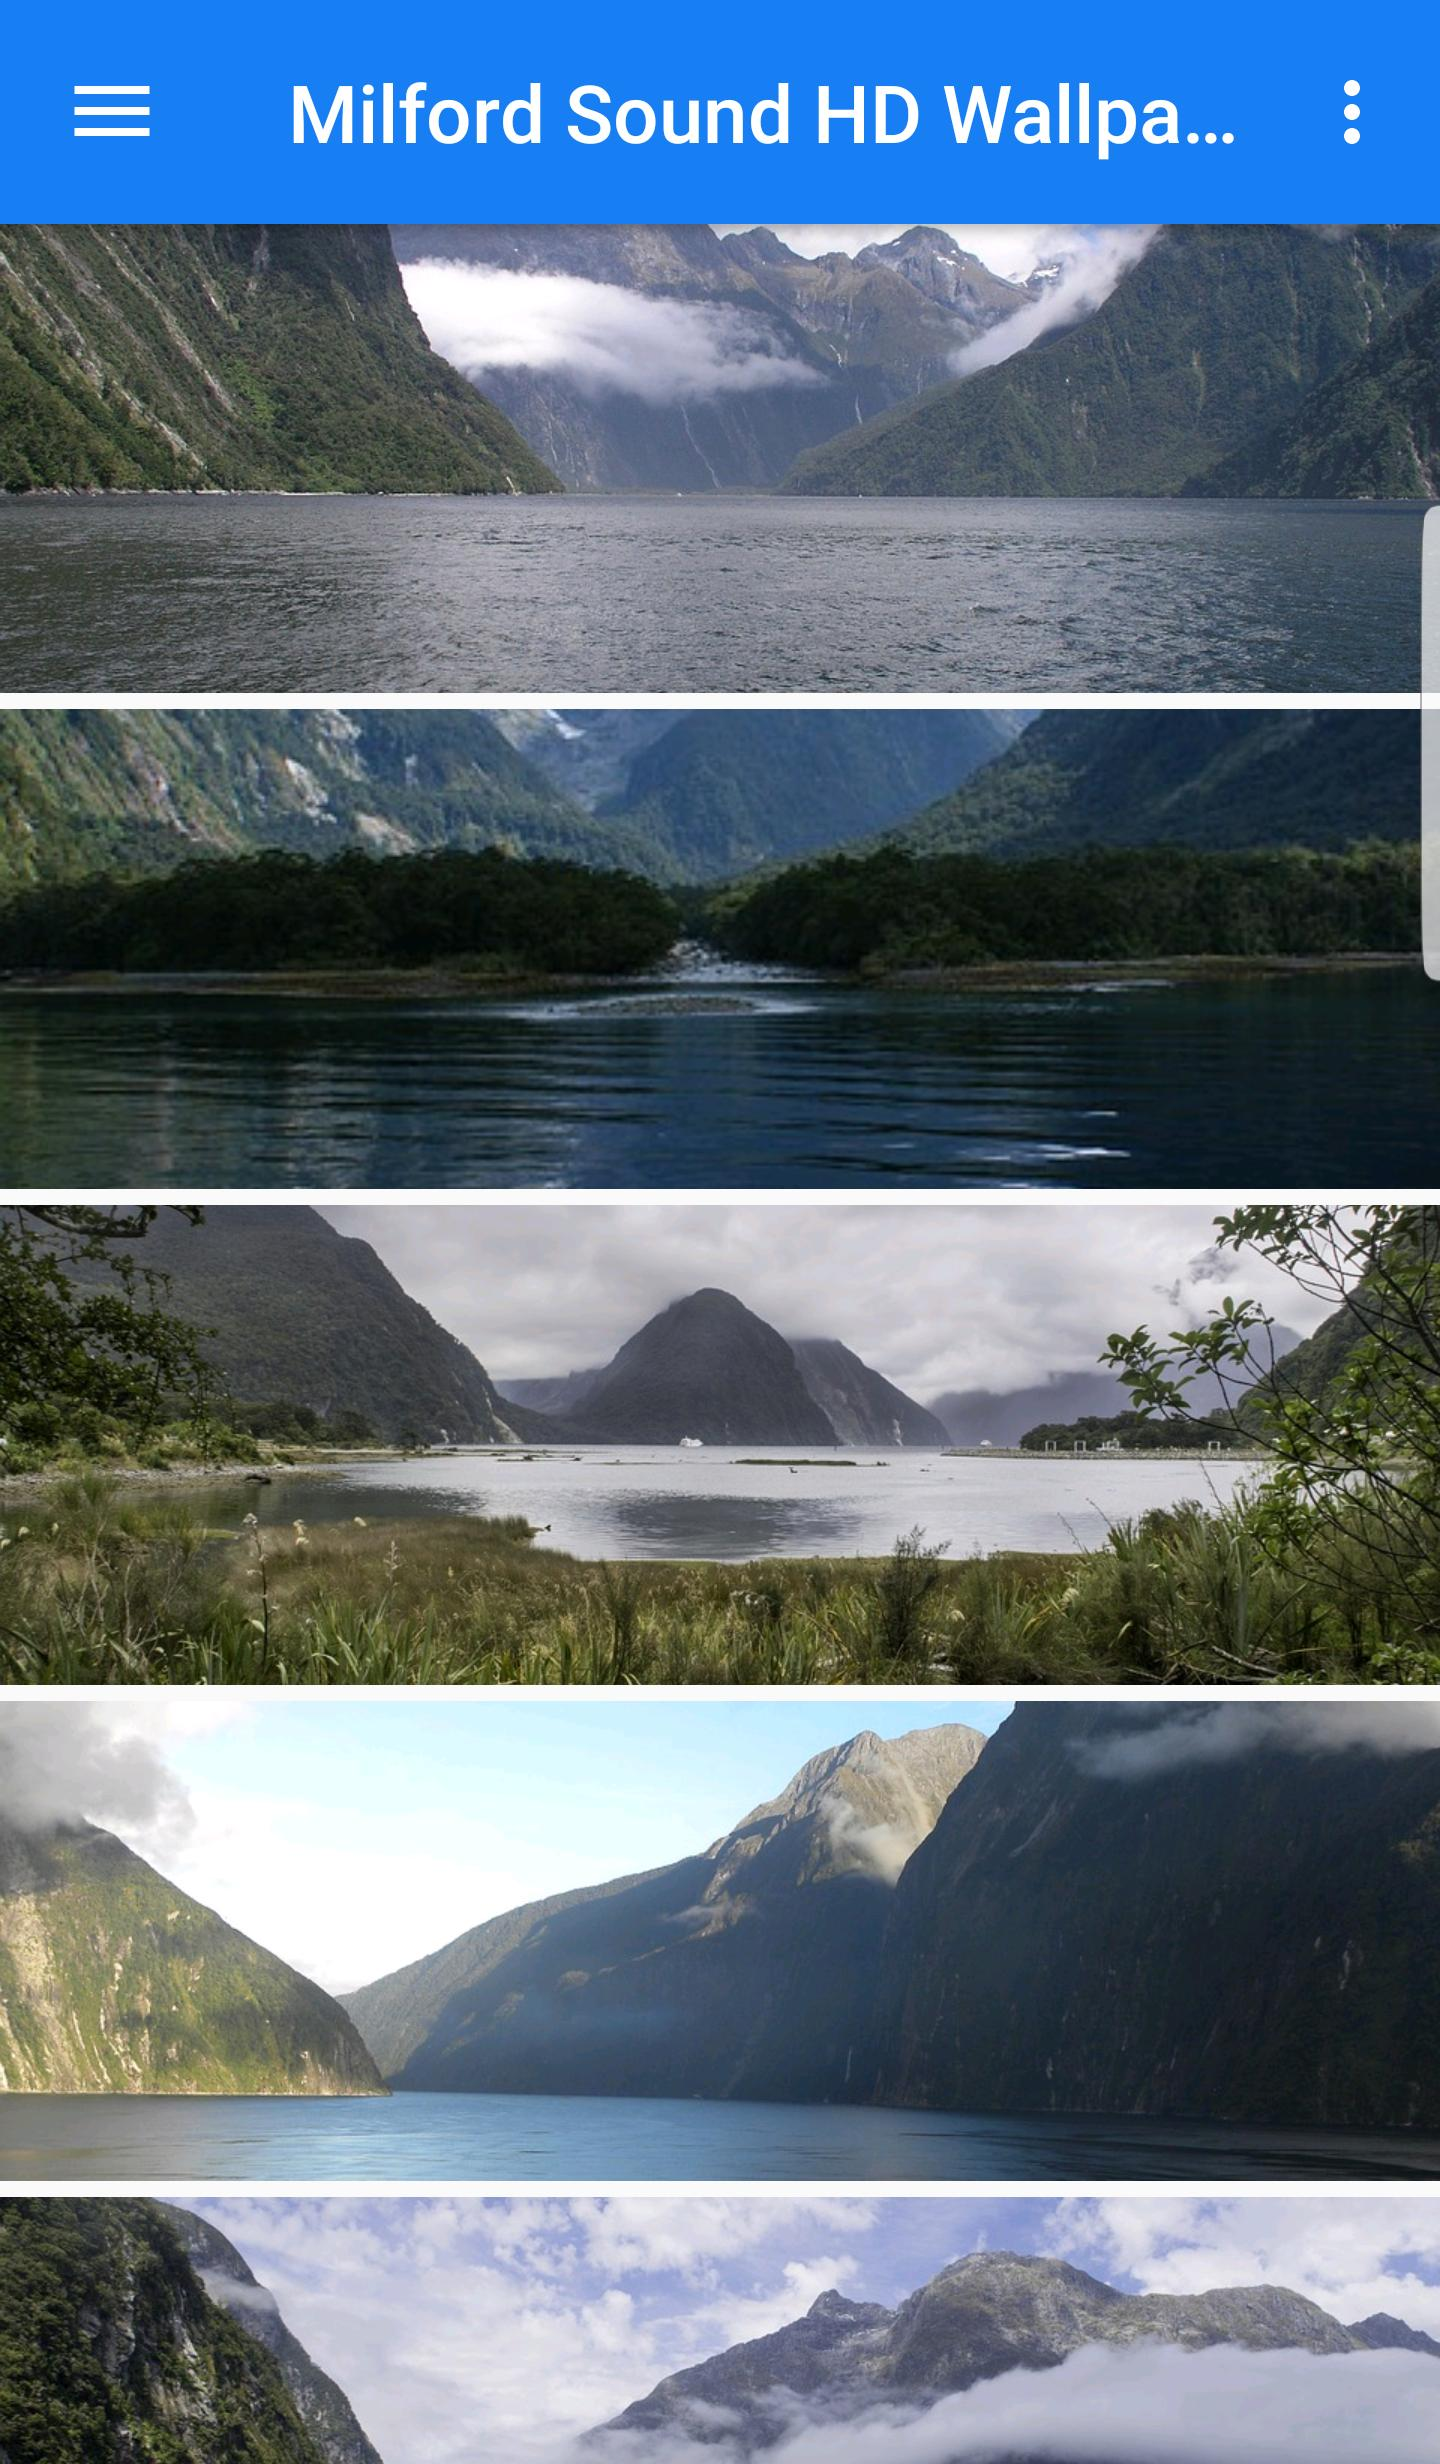 Milford Sound Hd Wallpapers For Android Apk Download